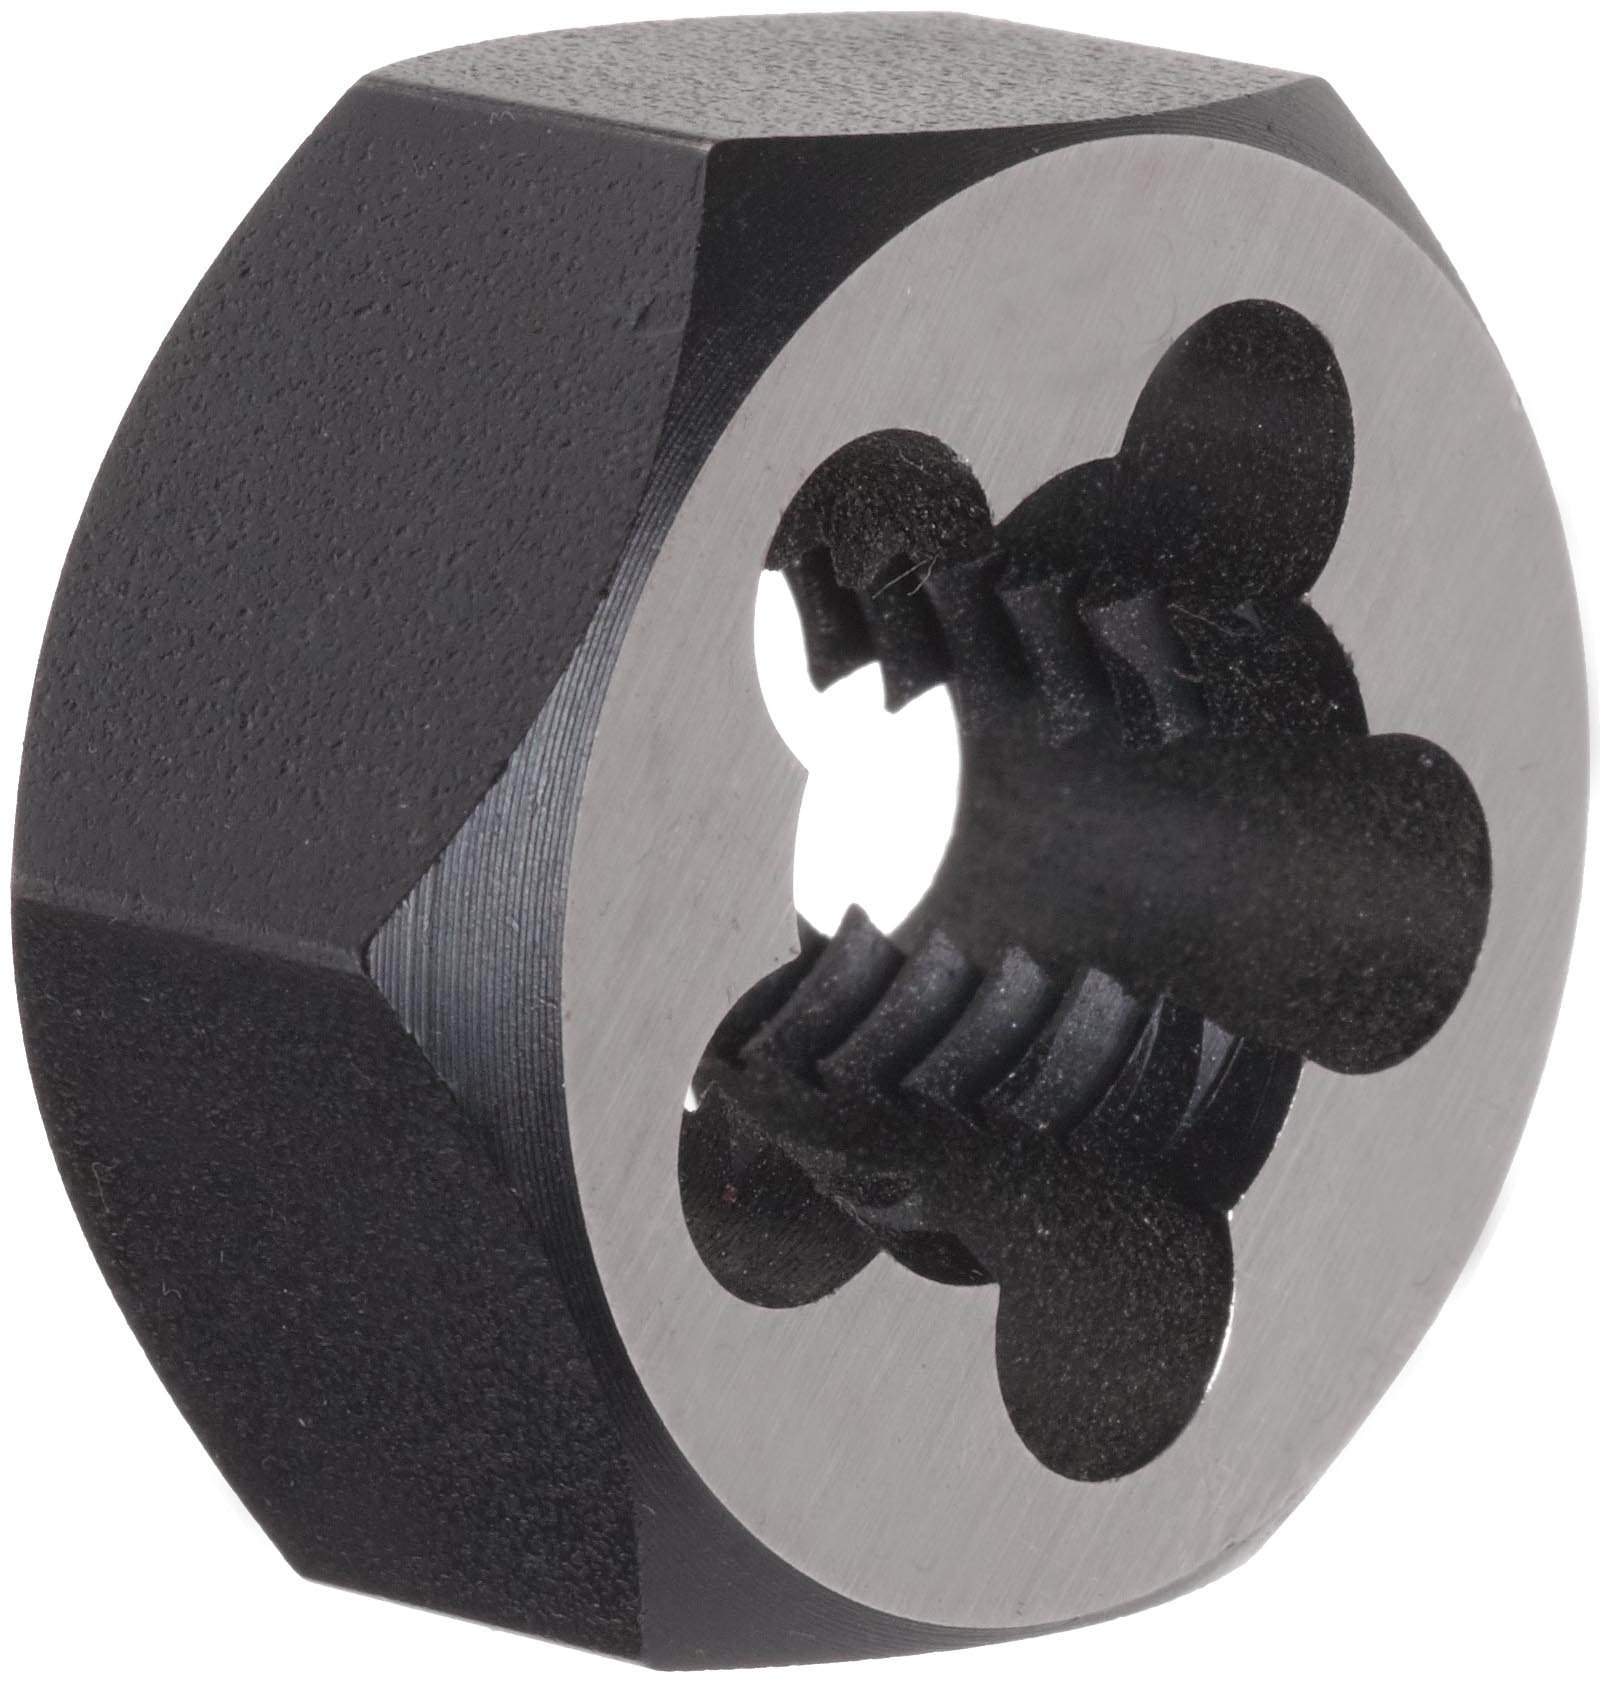 Union Butterfield 2025(UNC) Carbon Steel Hexagon Threading Die, Uncoated (Bright) Finish, 5/8''-11 Thread Size by Union Butterfield